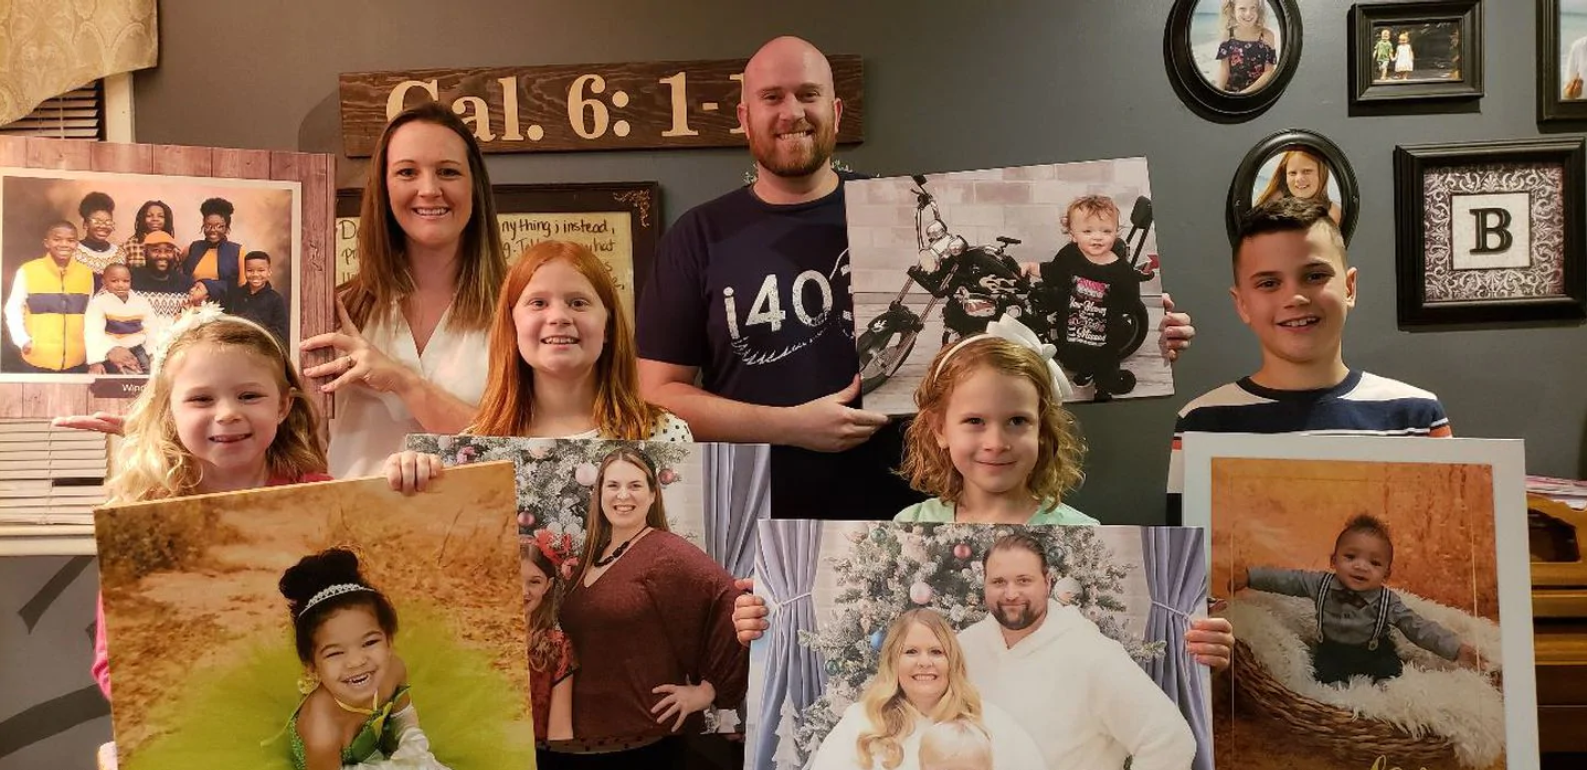 Returning lost photos to their owners